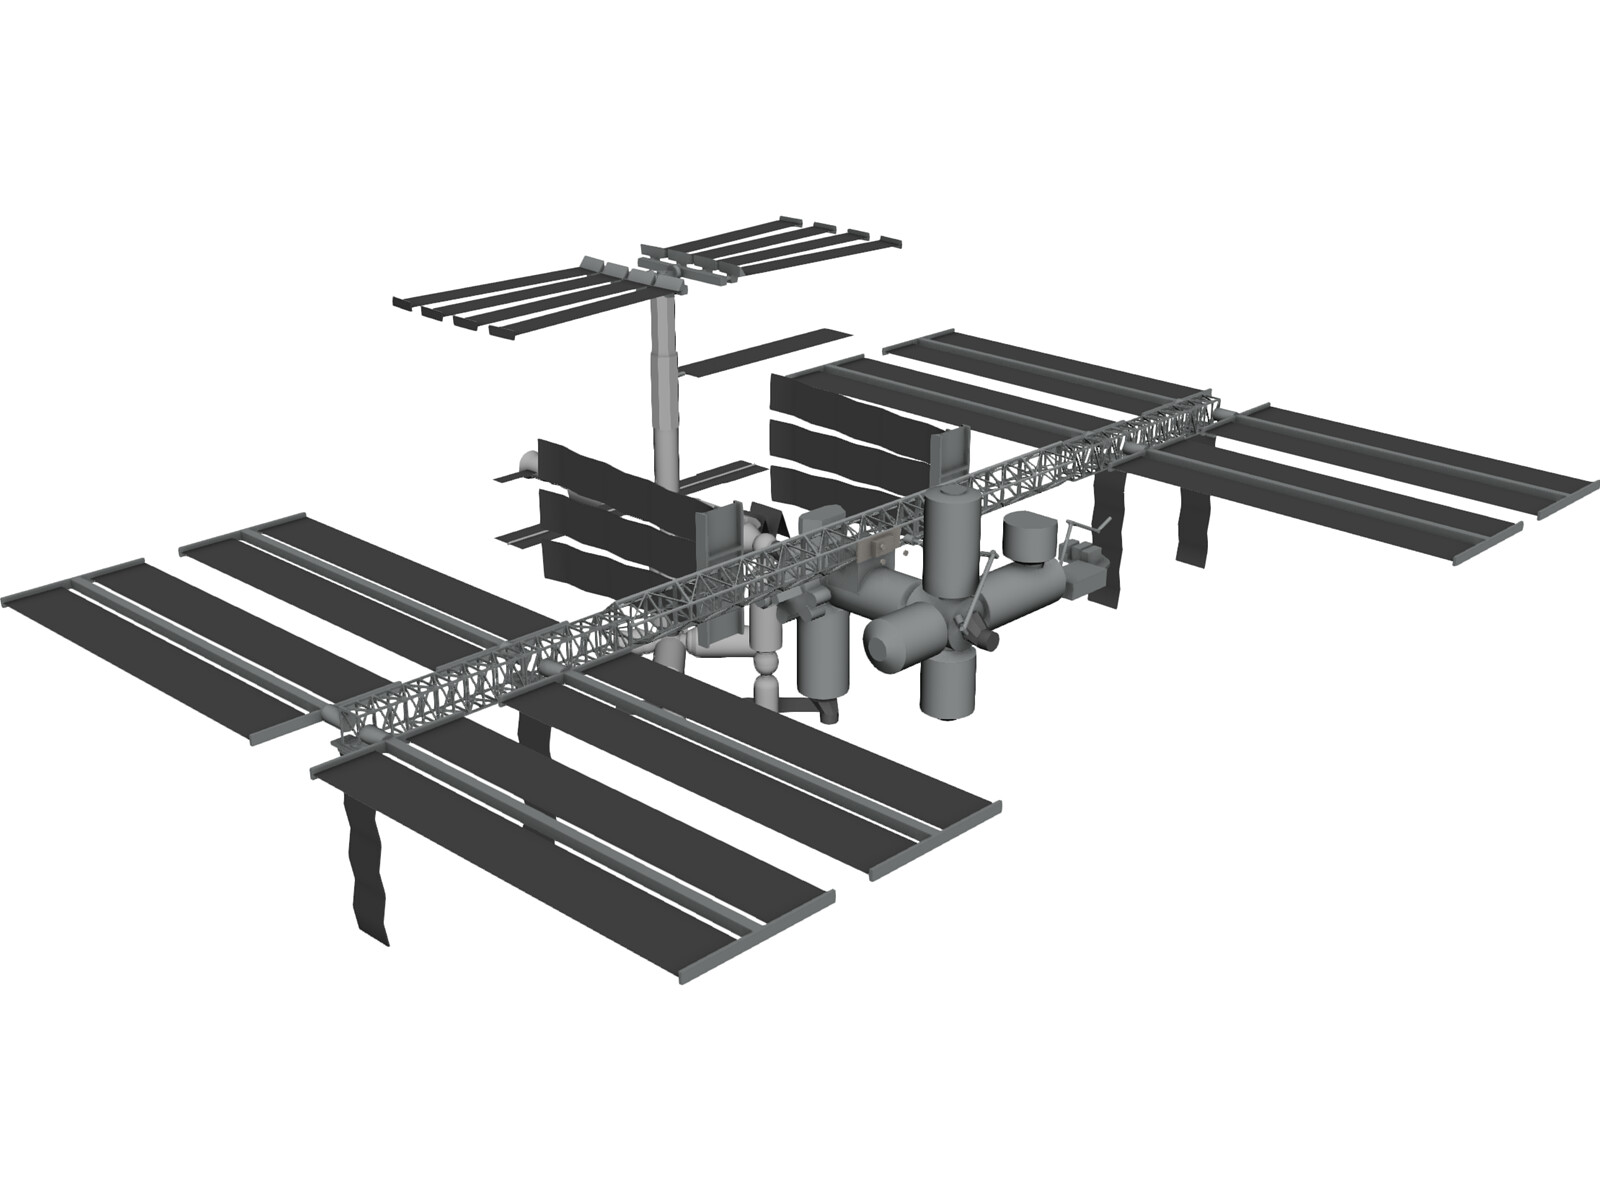 International Space Station (ISS) 3D CAD Model